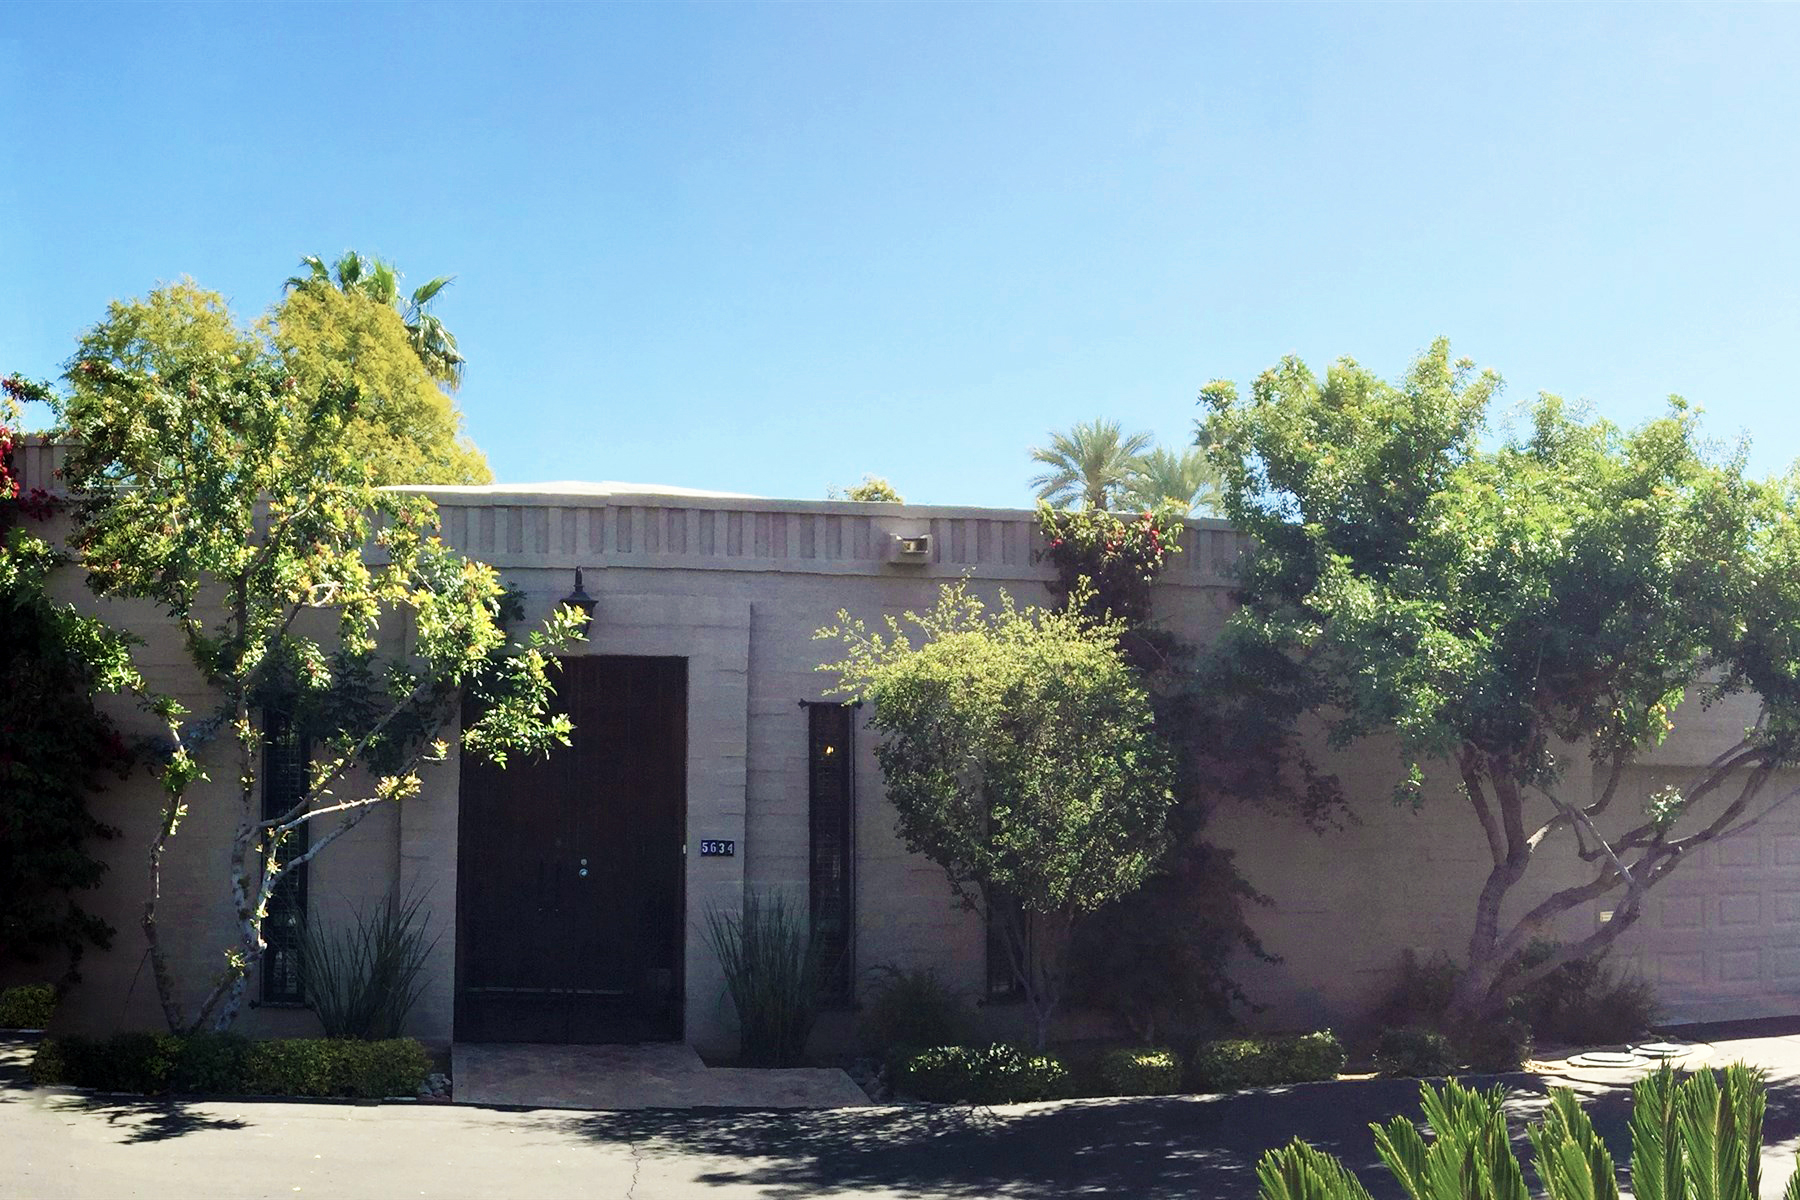 Stadthaus für Verkauf beim Coveted Single Level Urban Town Home in the Hidden Gem of ''Scottsdale North'' 5634 N Scottsdale Rd Paradise Valley, Arizona 85253 Vereinigte Staaten